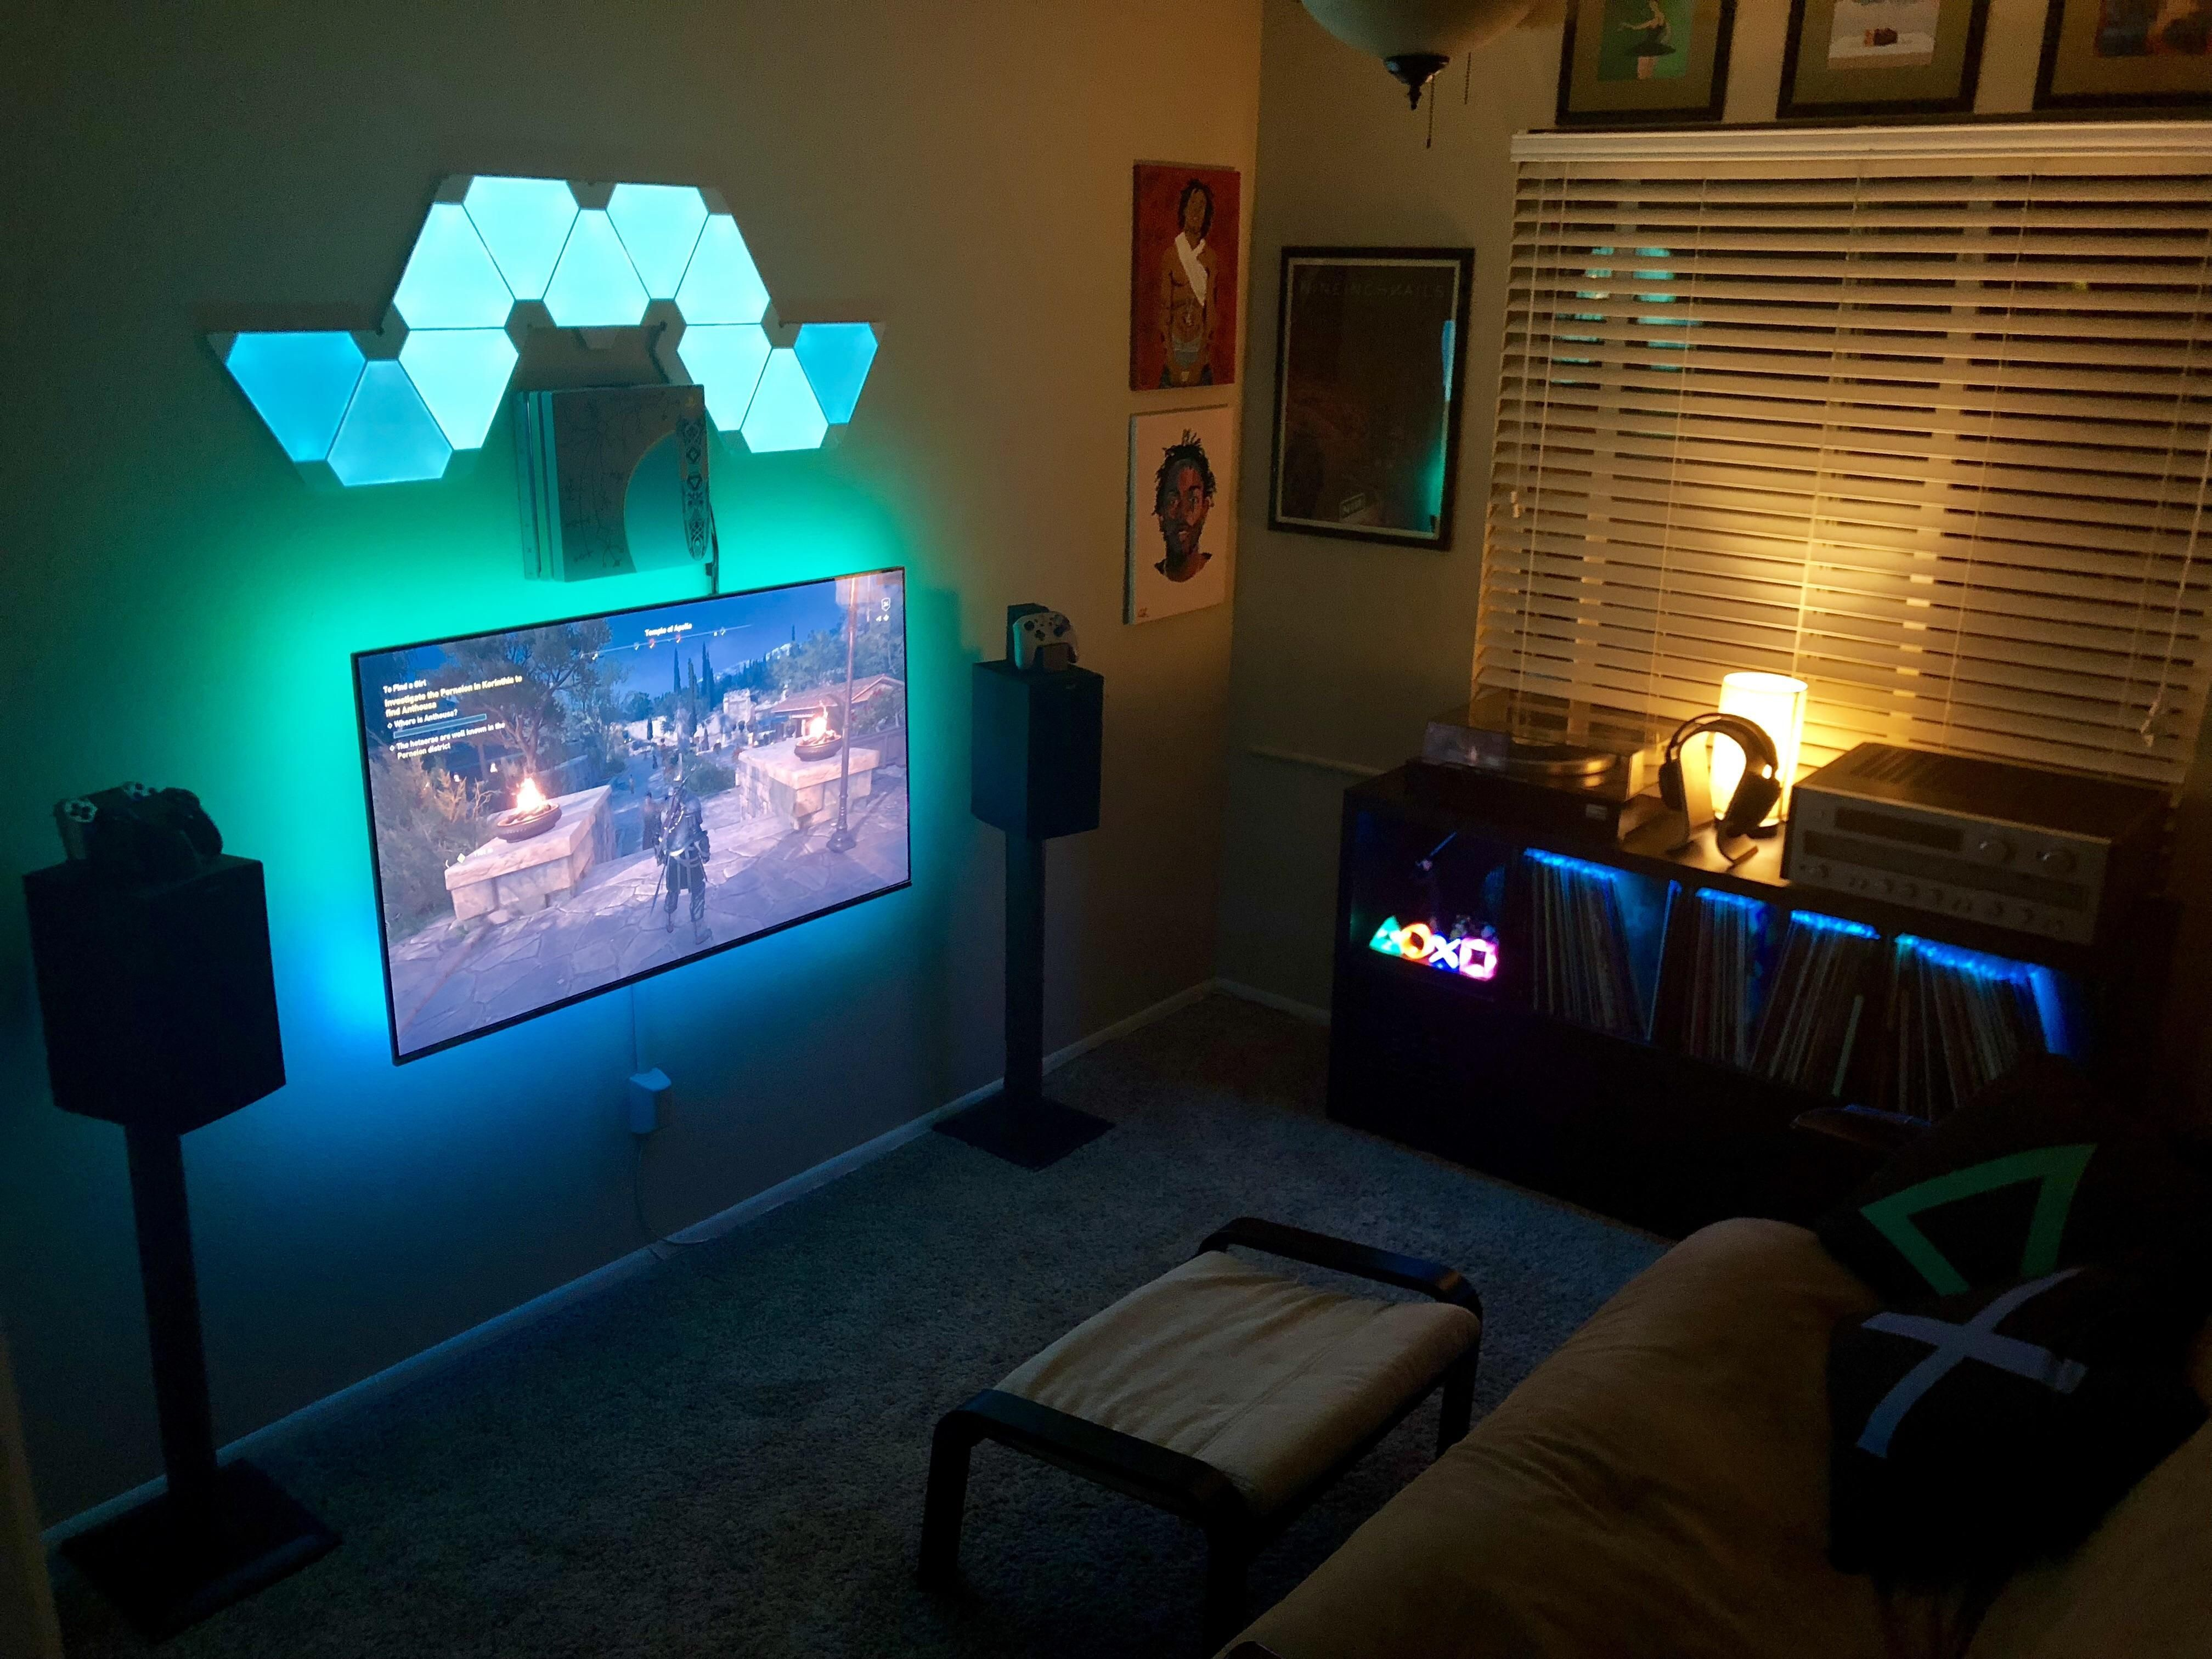 1:freelancer 2.battlefield 2 3.battlefield 1942 4.sto 5.cod4 11 years ago 1. Video Game Room Ideas - Find Your Dream Room Here   Video ...